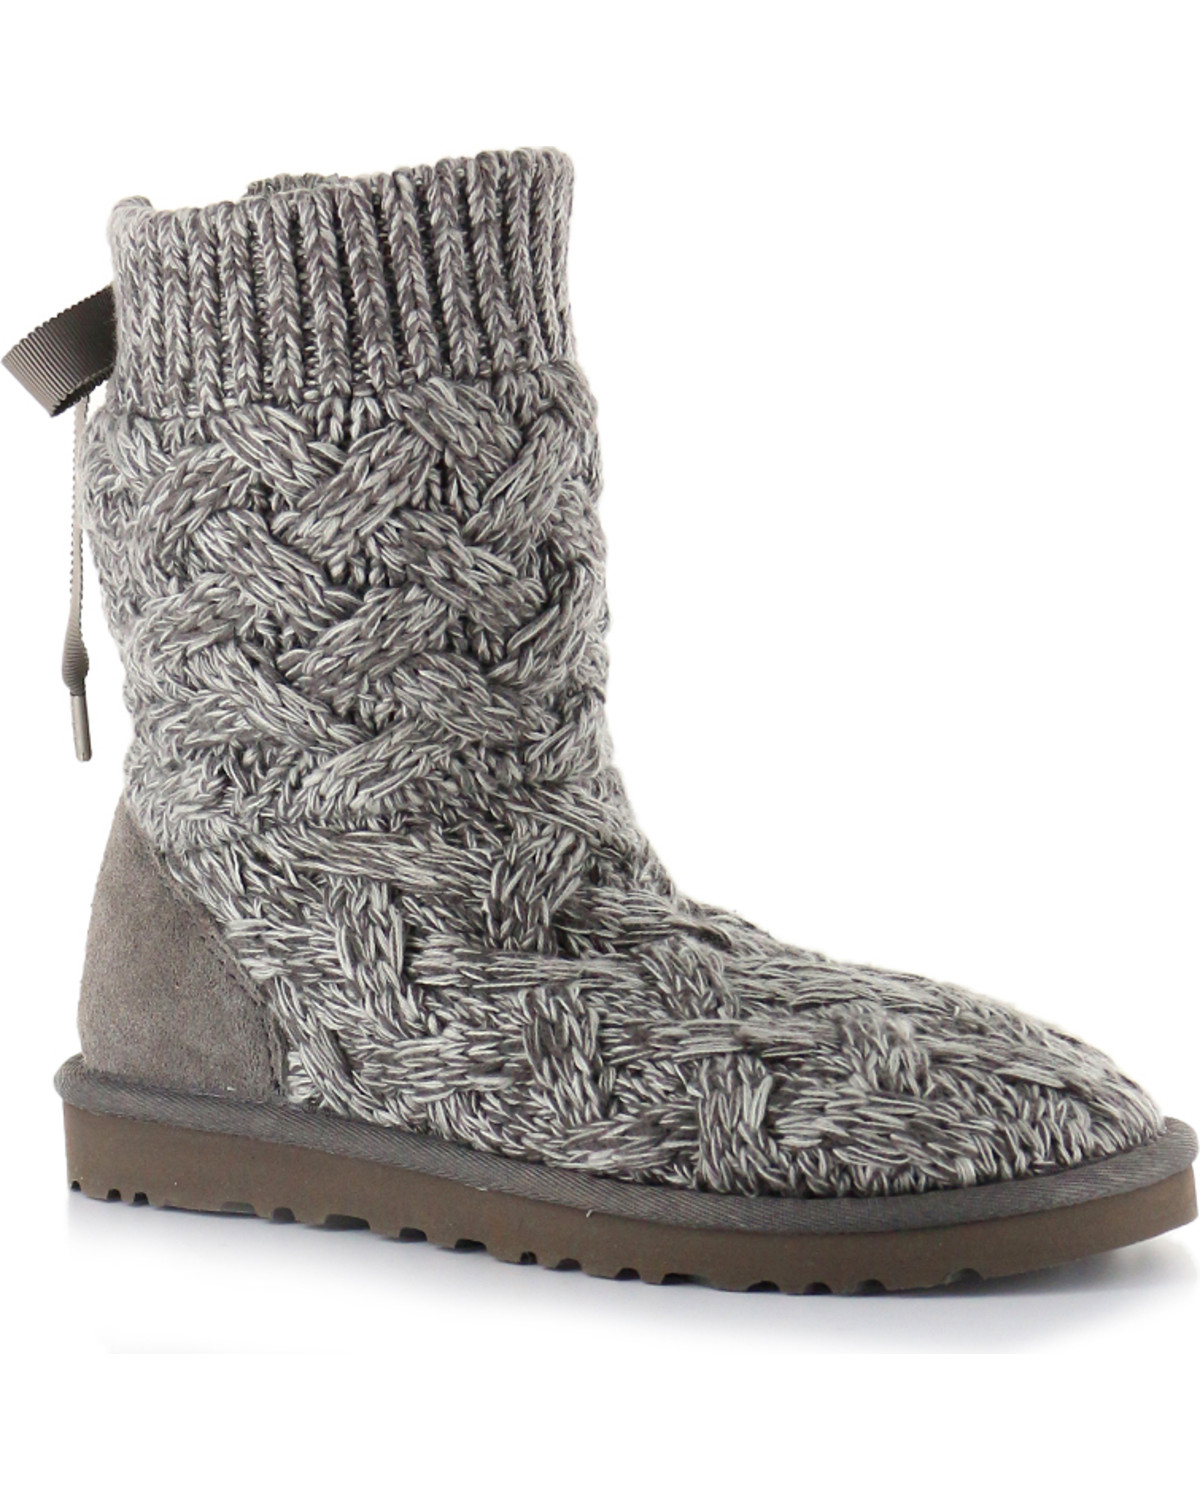 grey fold up/down knit uggs.